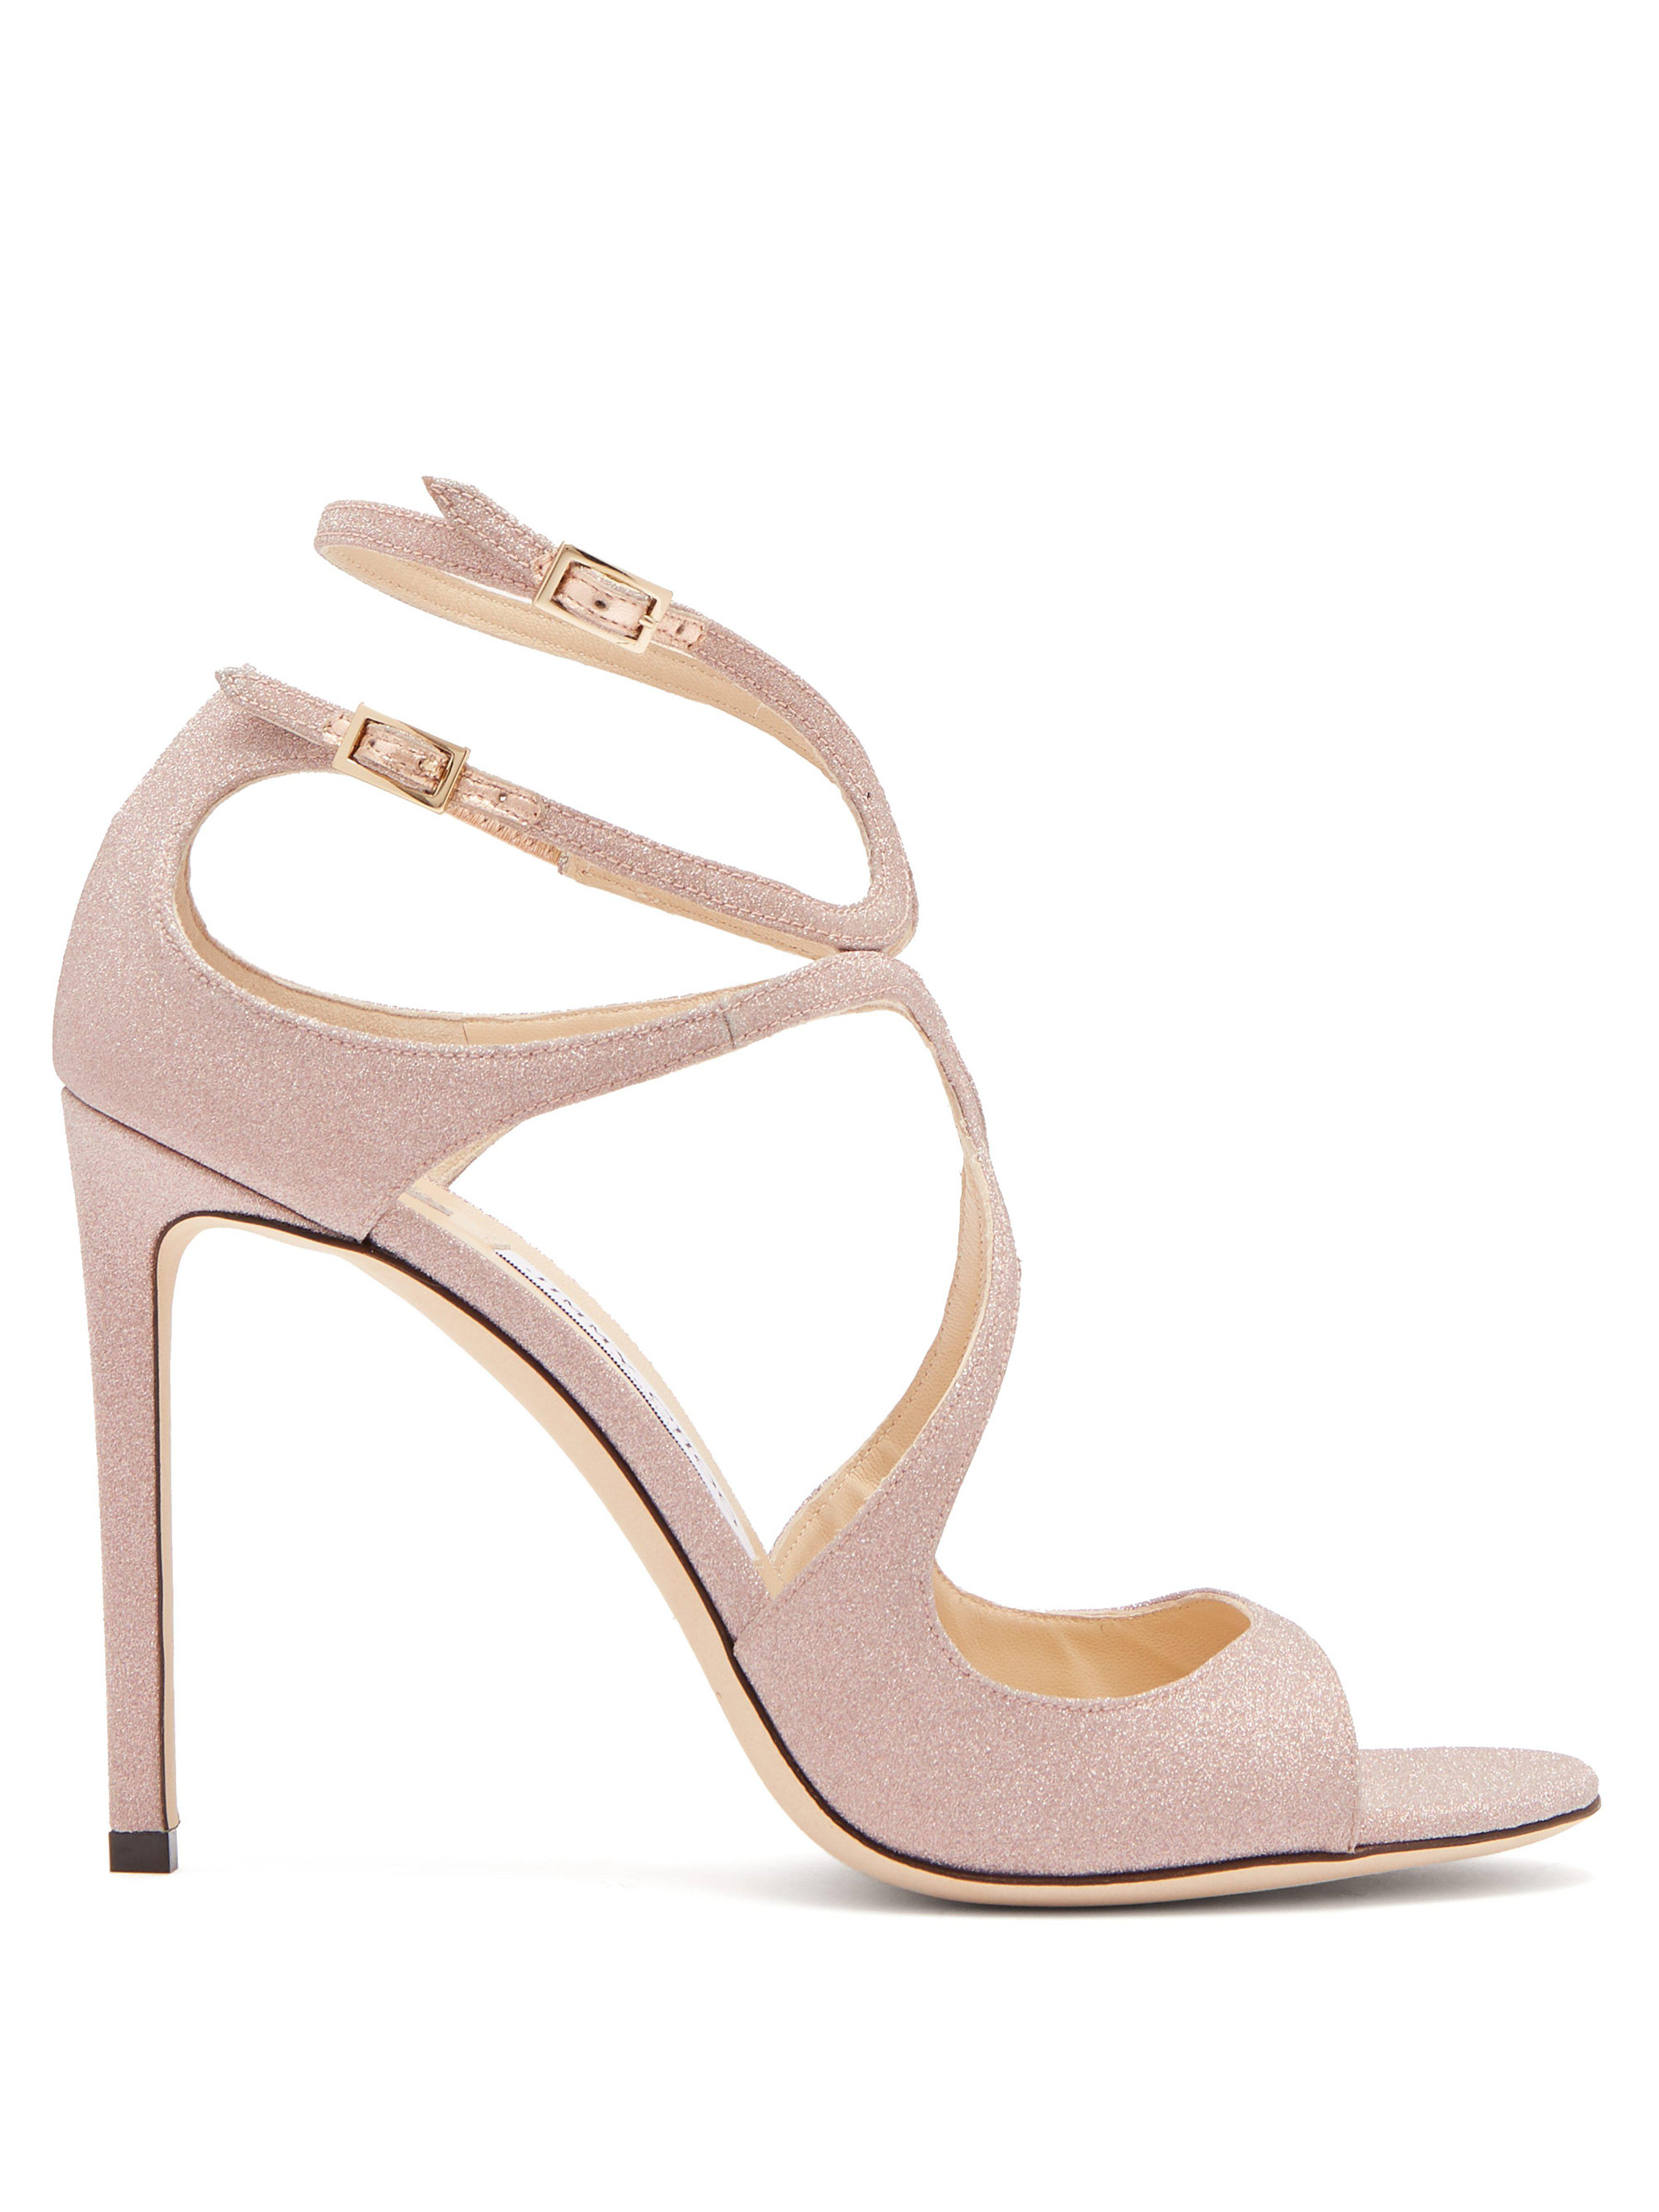 2512a457a4b7 Jimmy Choo Lang 100 Glitter Covered Leather Sandals in Pink - Lyst